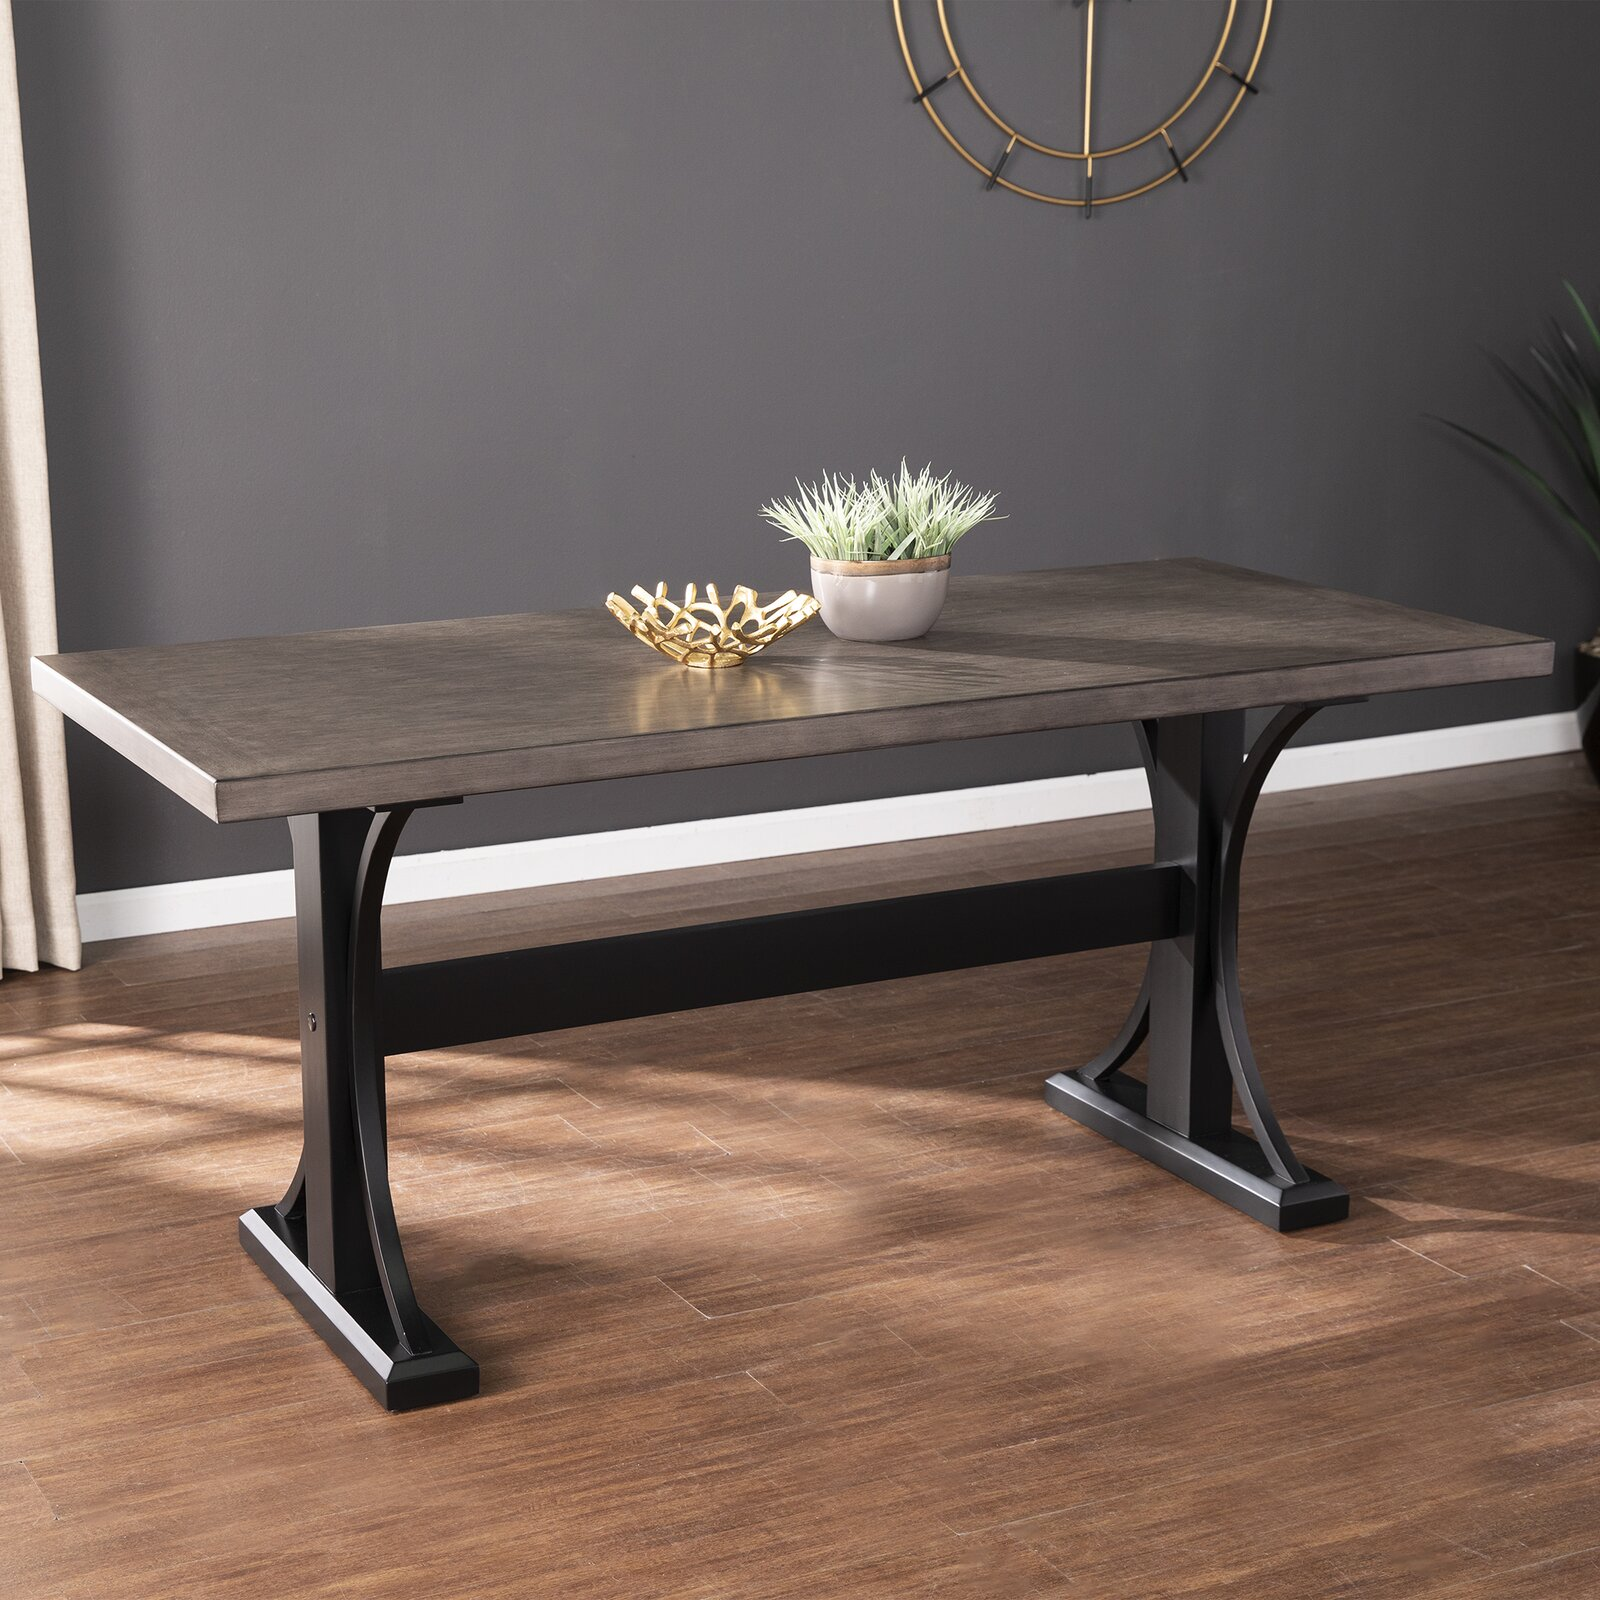 long-narrow-farmhouse-dining-table-black-trestle-base-neutral-wood-tabletop-67-inches-long-30-inches-wide-small-space-dining-furniture-ideas